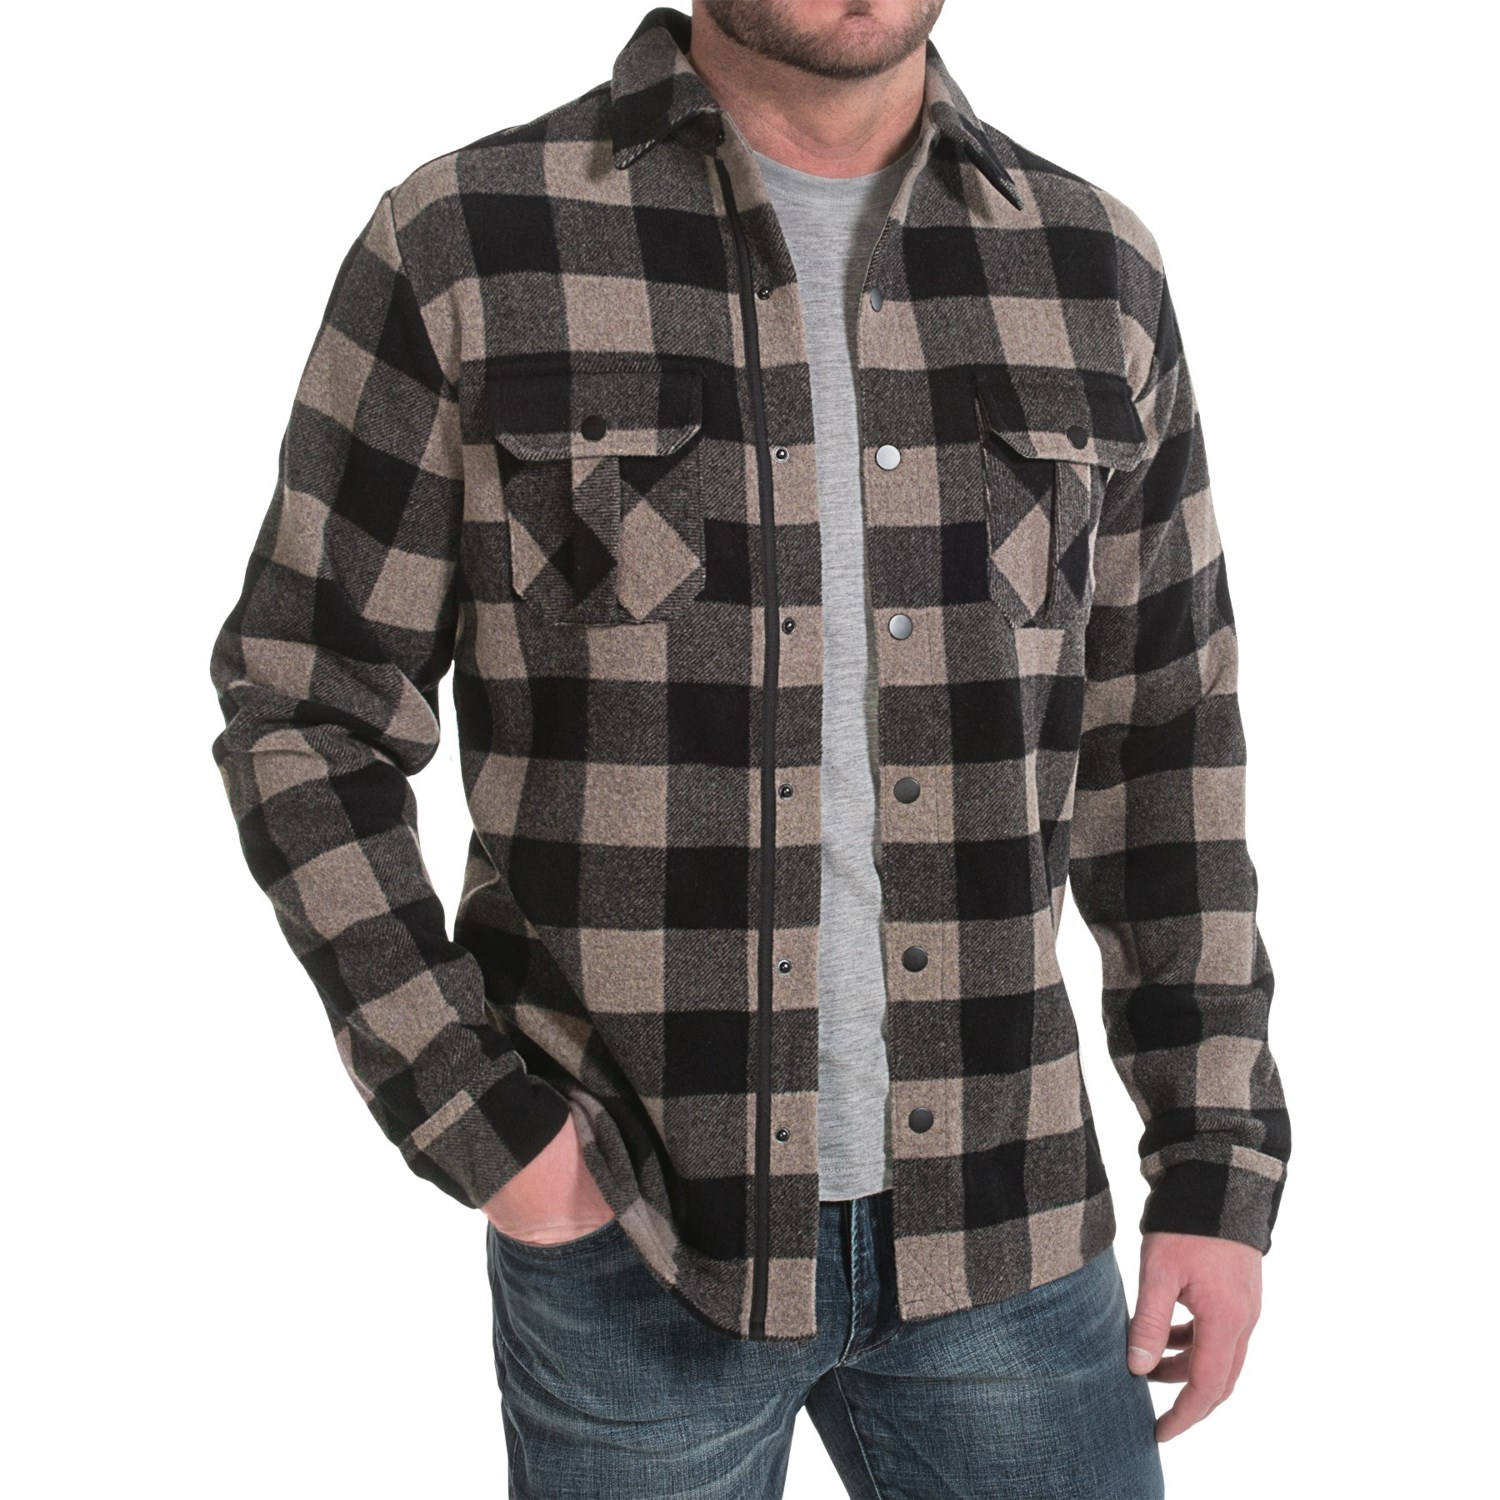 Flannel Motorcycle Jacket >> Mens Wool Shirt Jacket | Jackets Review